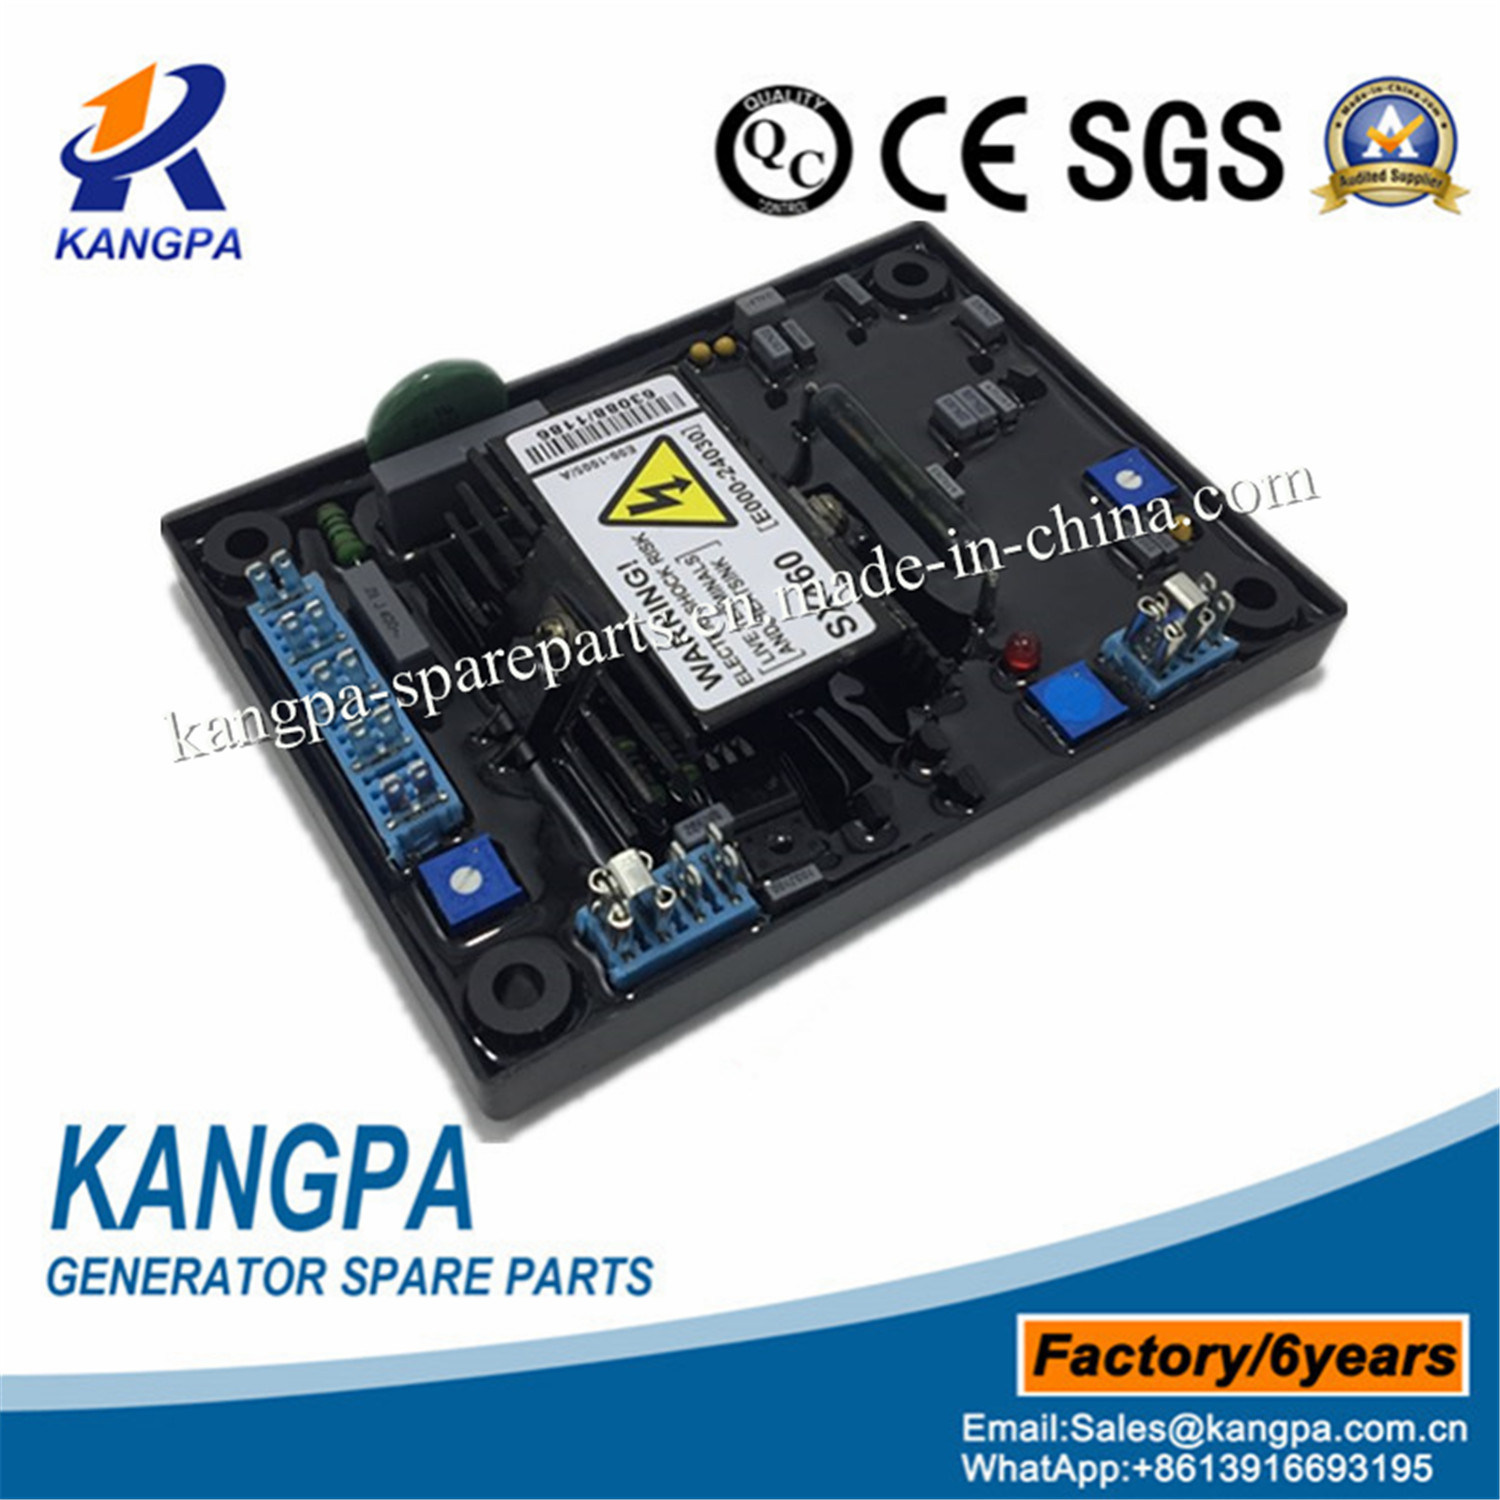 Wholesale Portable Avr Buy Reliable From Newage Stamford Generator Wiring Diagram Spare Parts Automatic Voltage Regulator Sx460 For